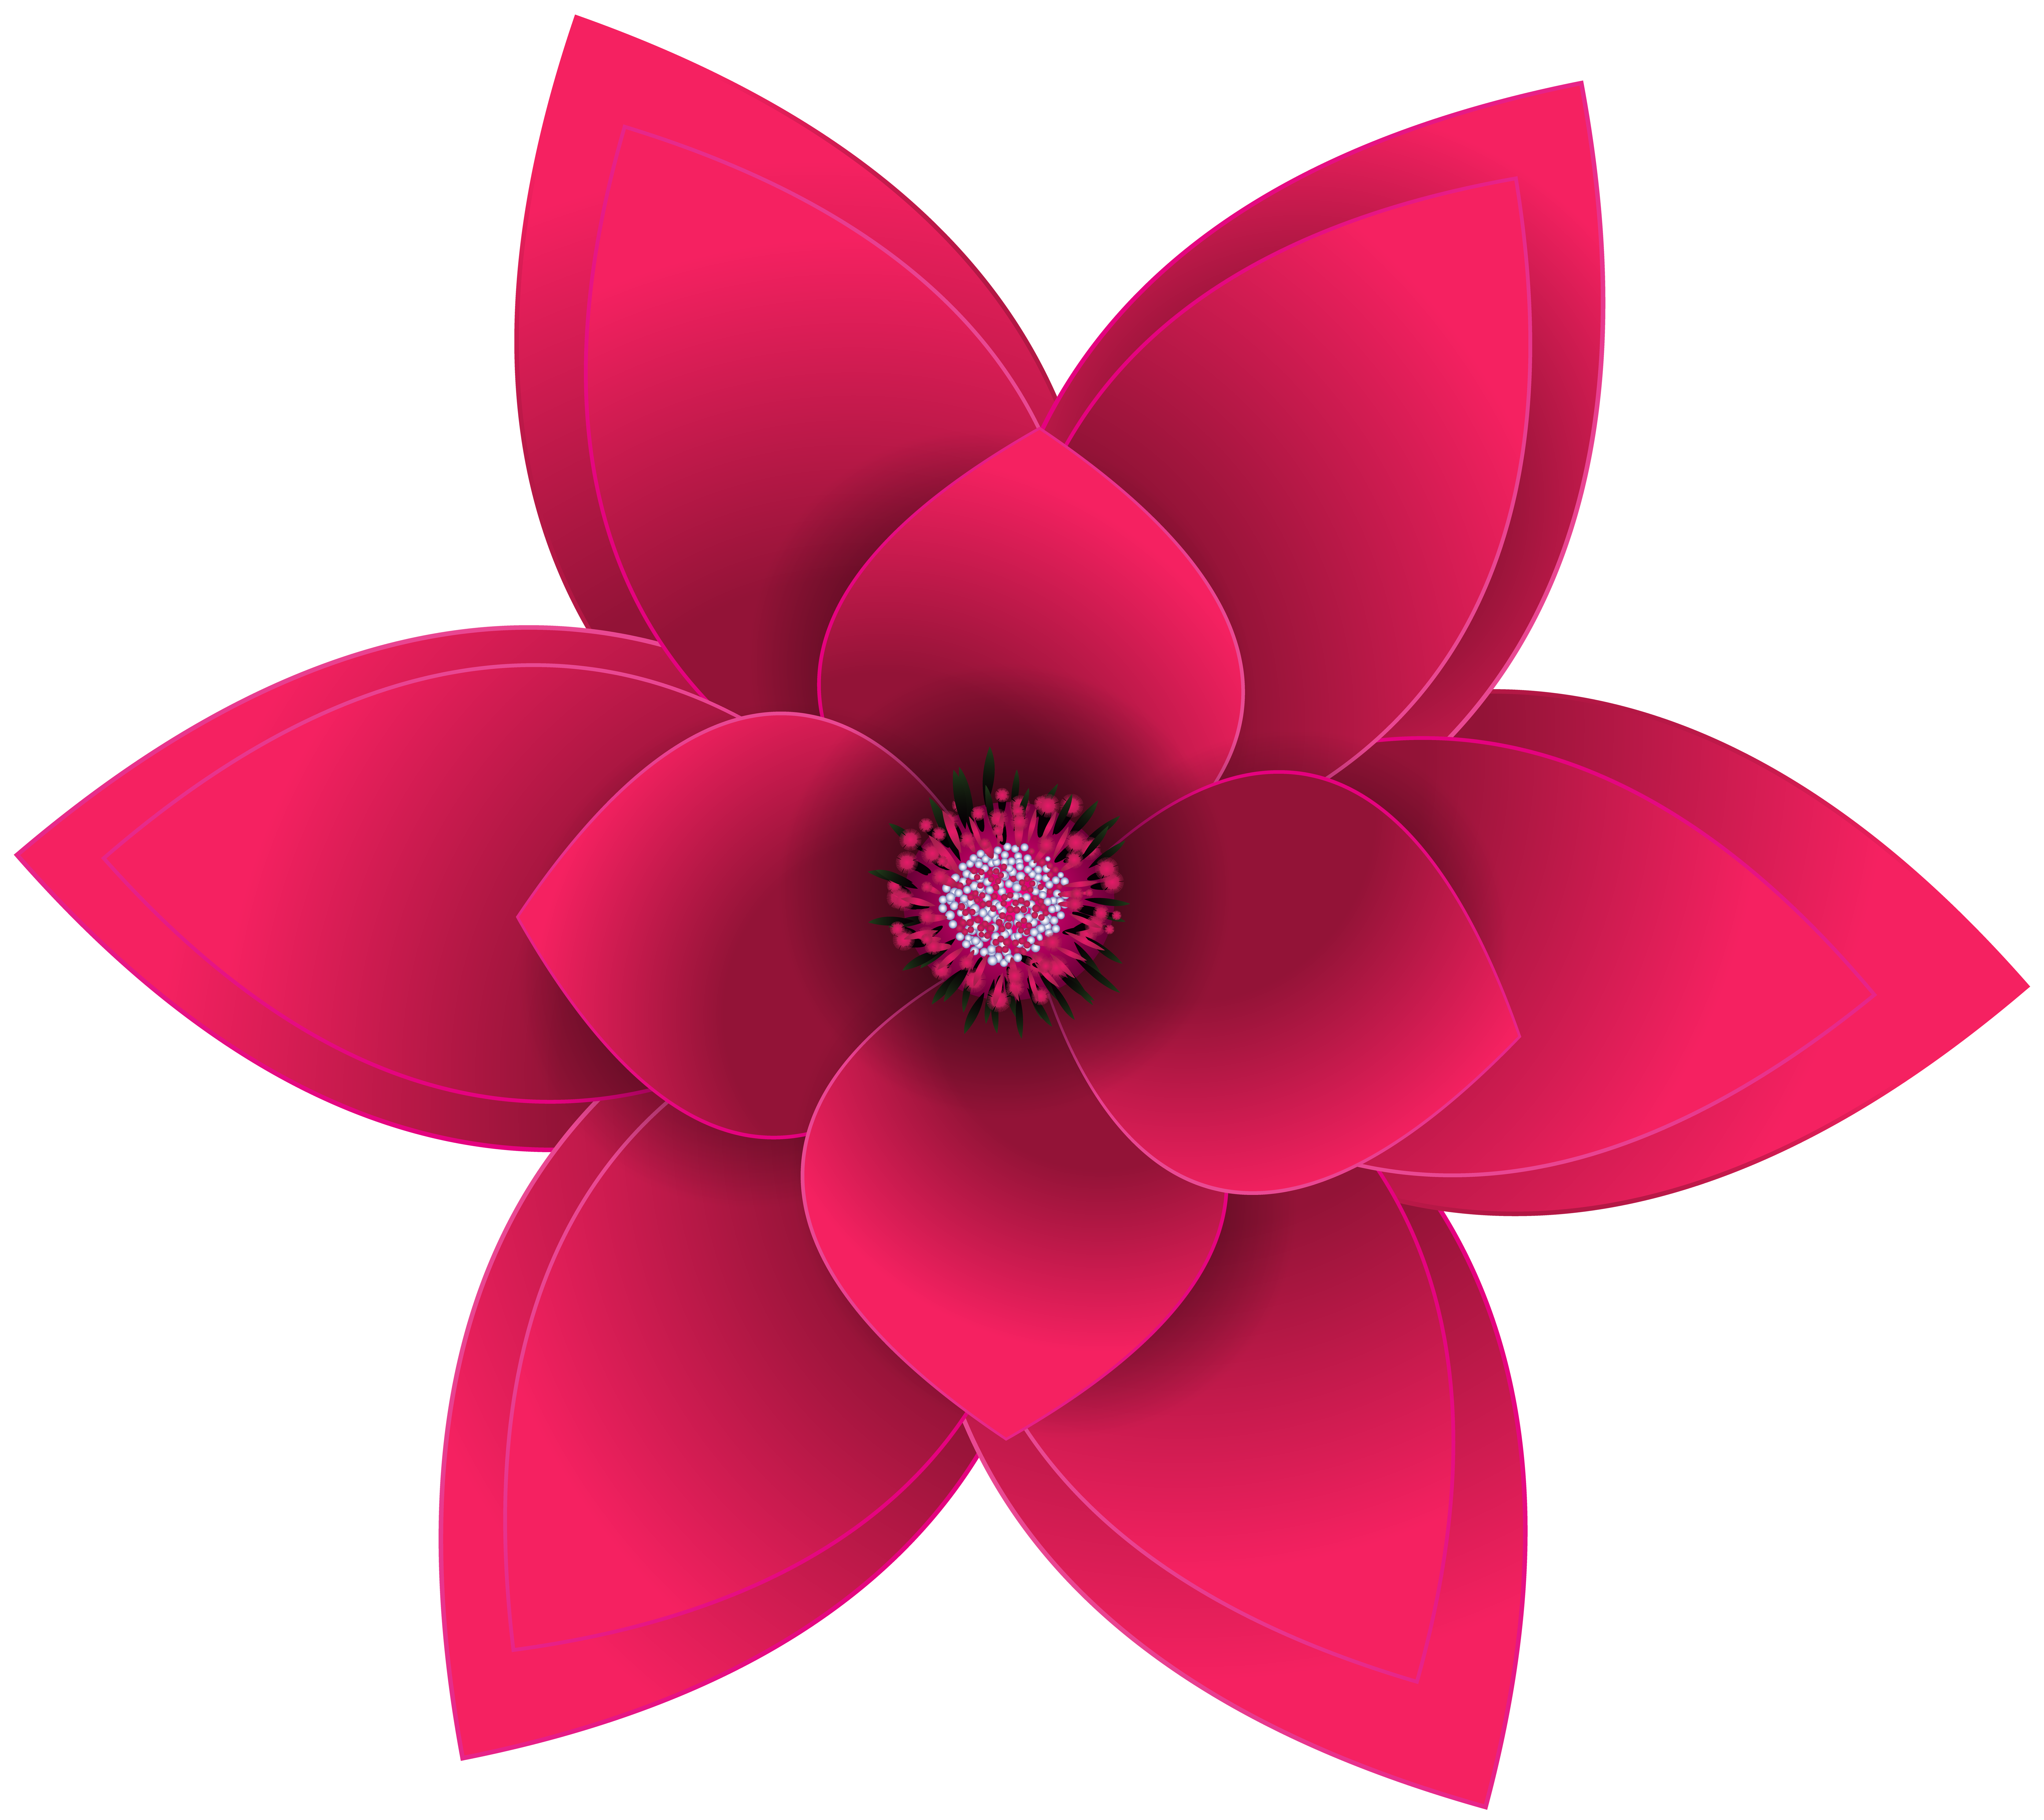 free clip art flowers transparent png clipart images free - HD8000×7123